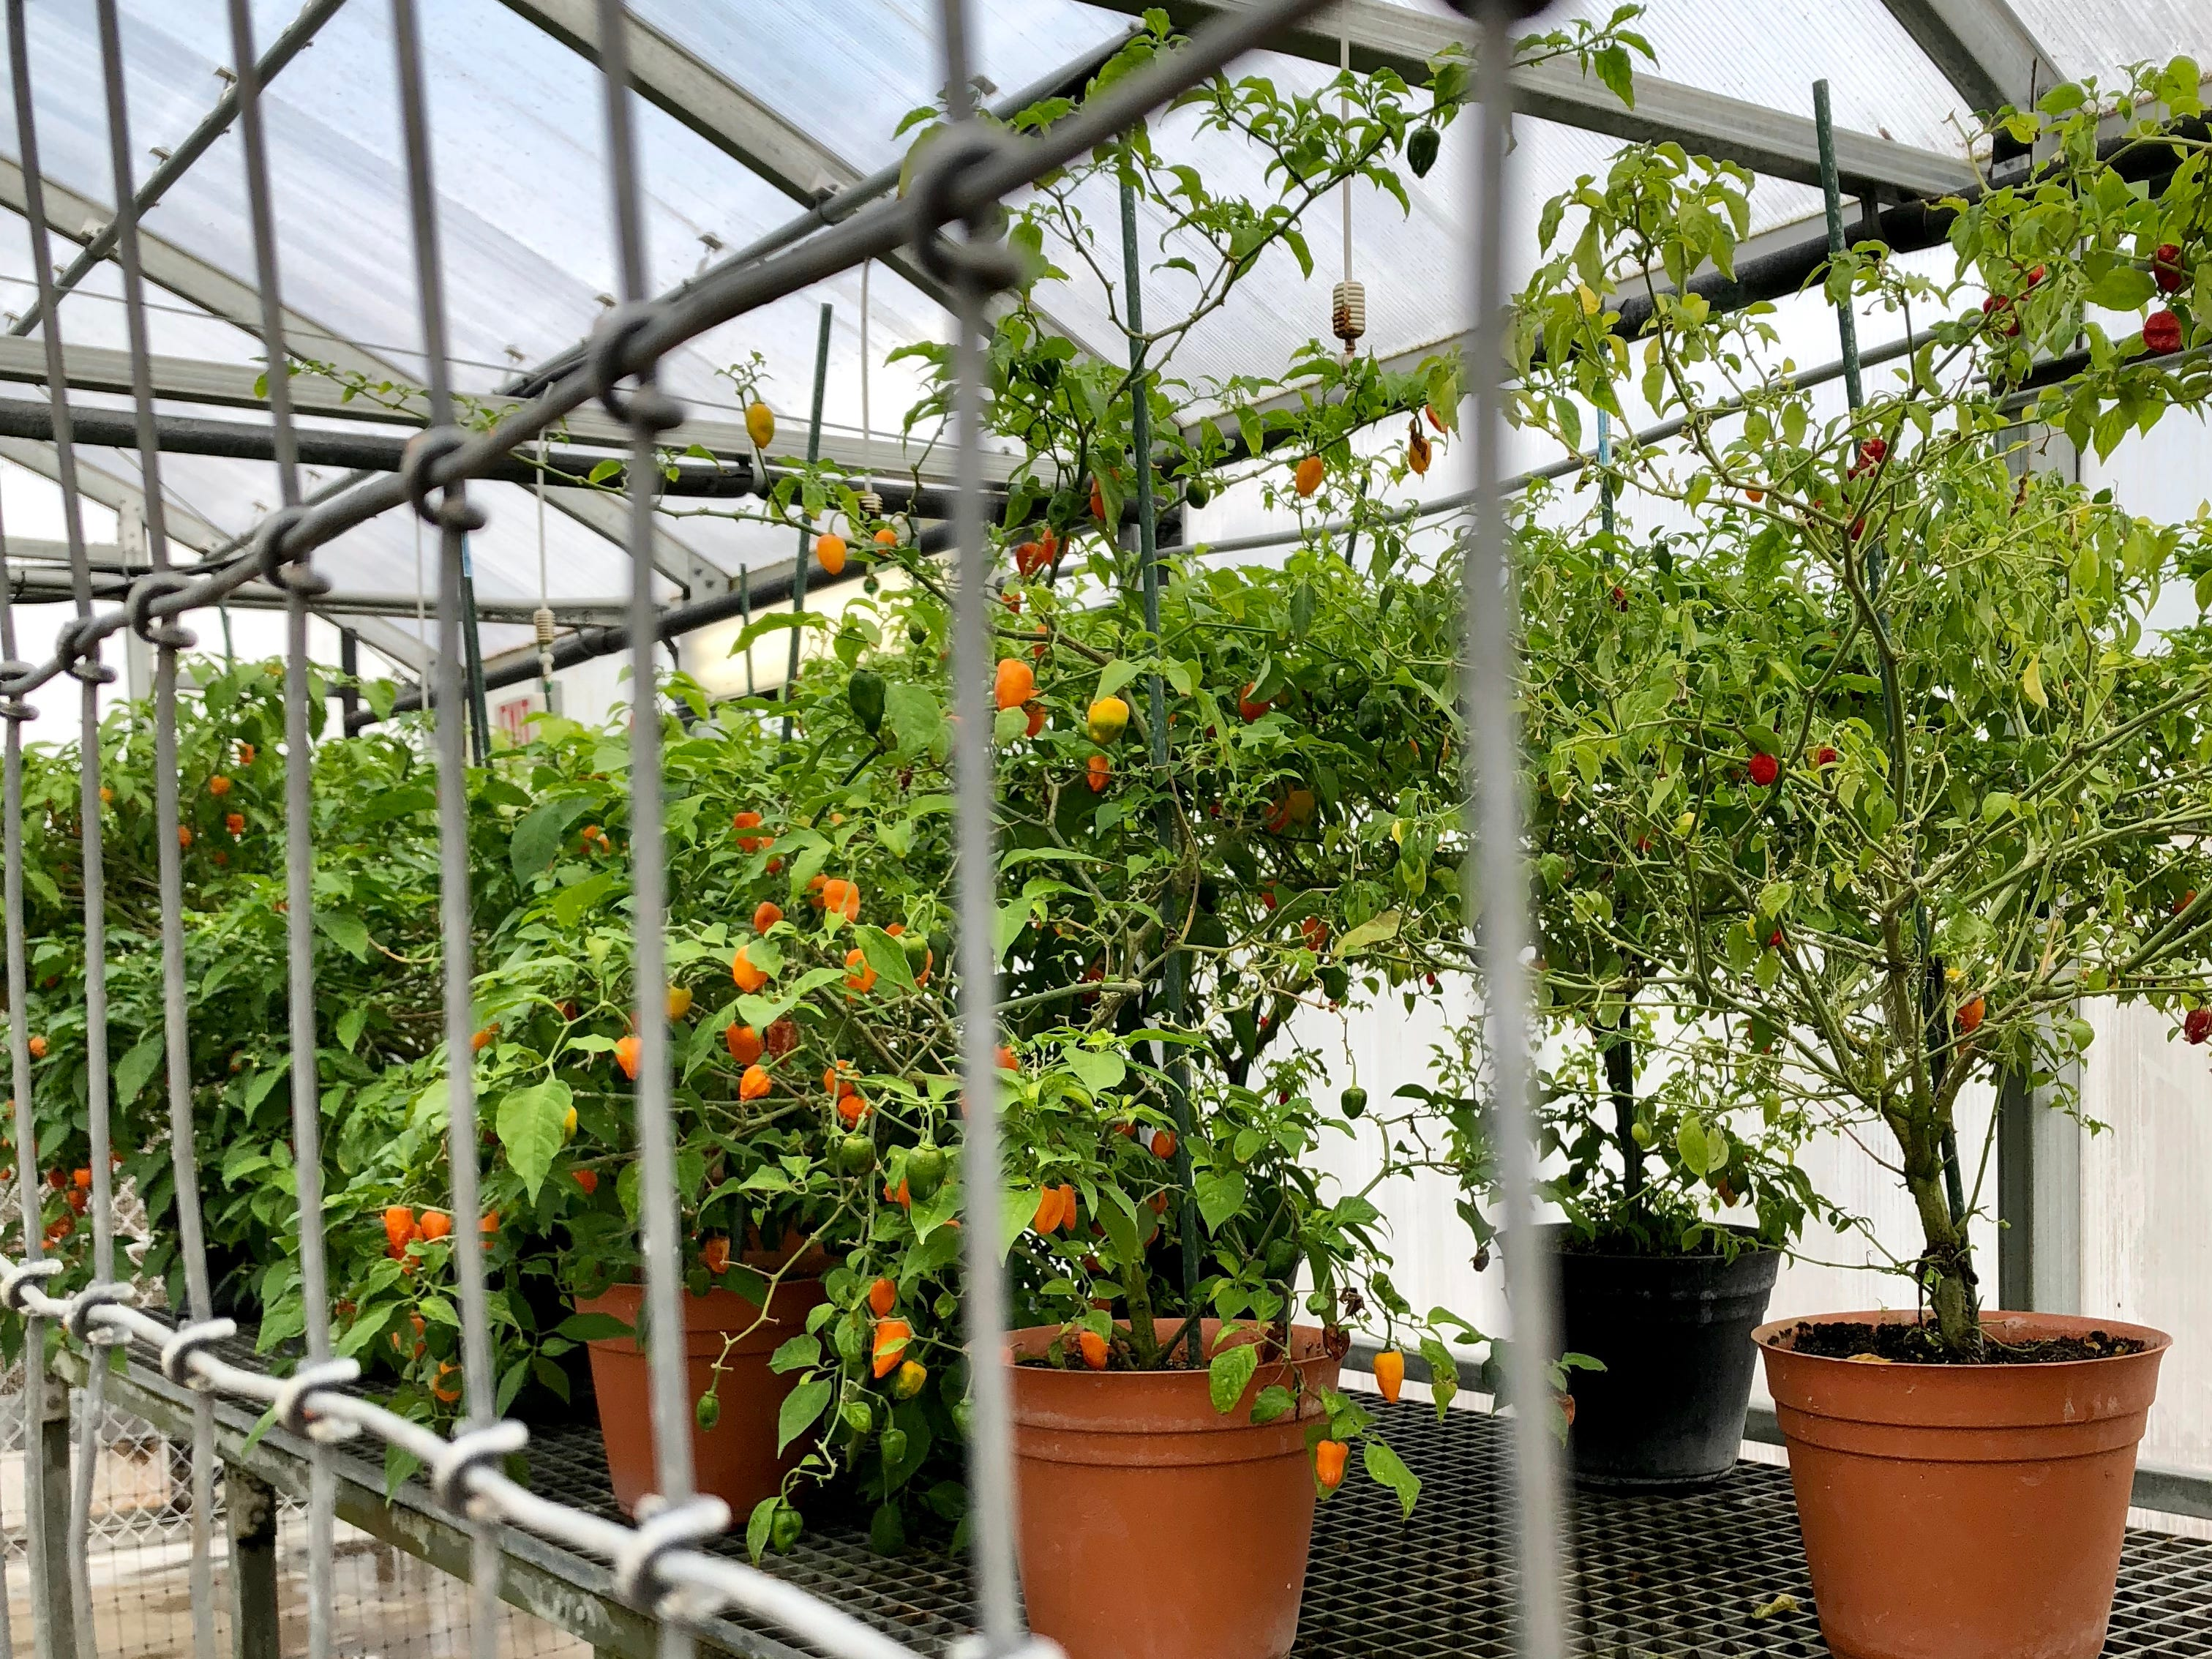 Peppers grow in a greenhouse on Avery Island to one day become part of Tabasco sauce.